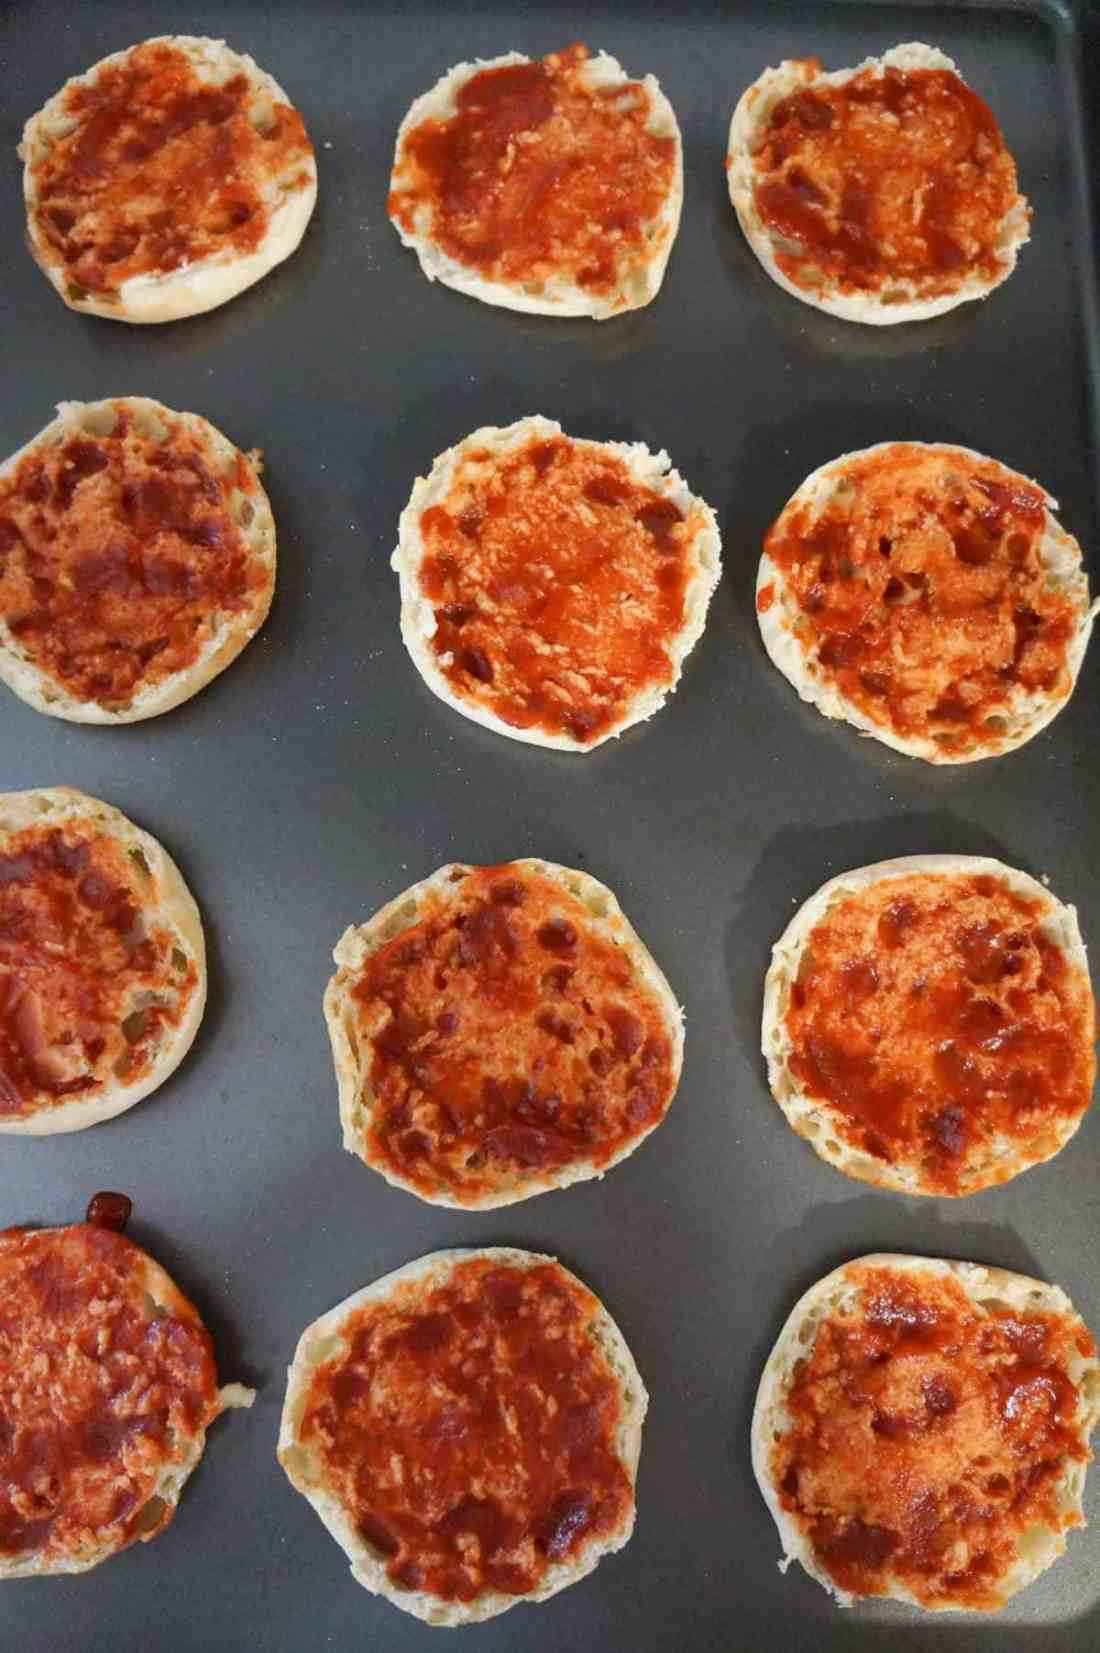 English muffins spread with Heinz chili sauce